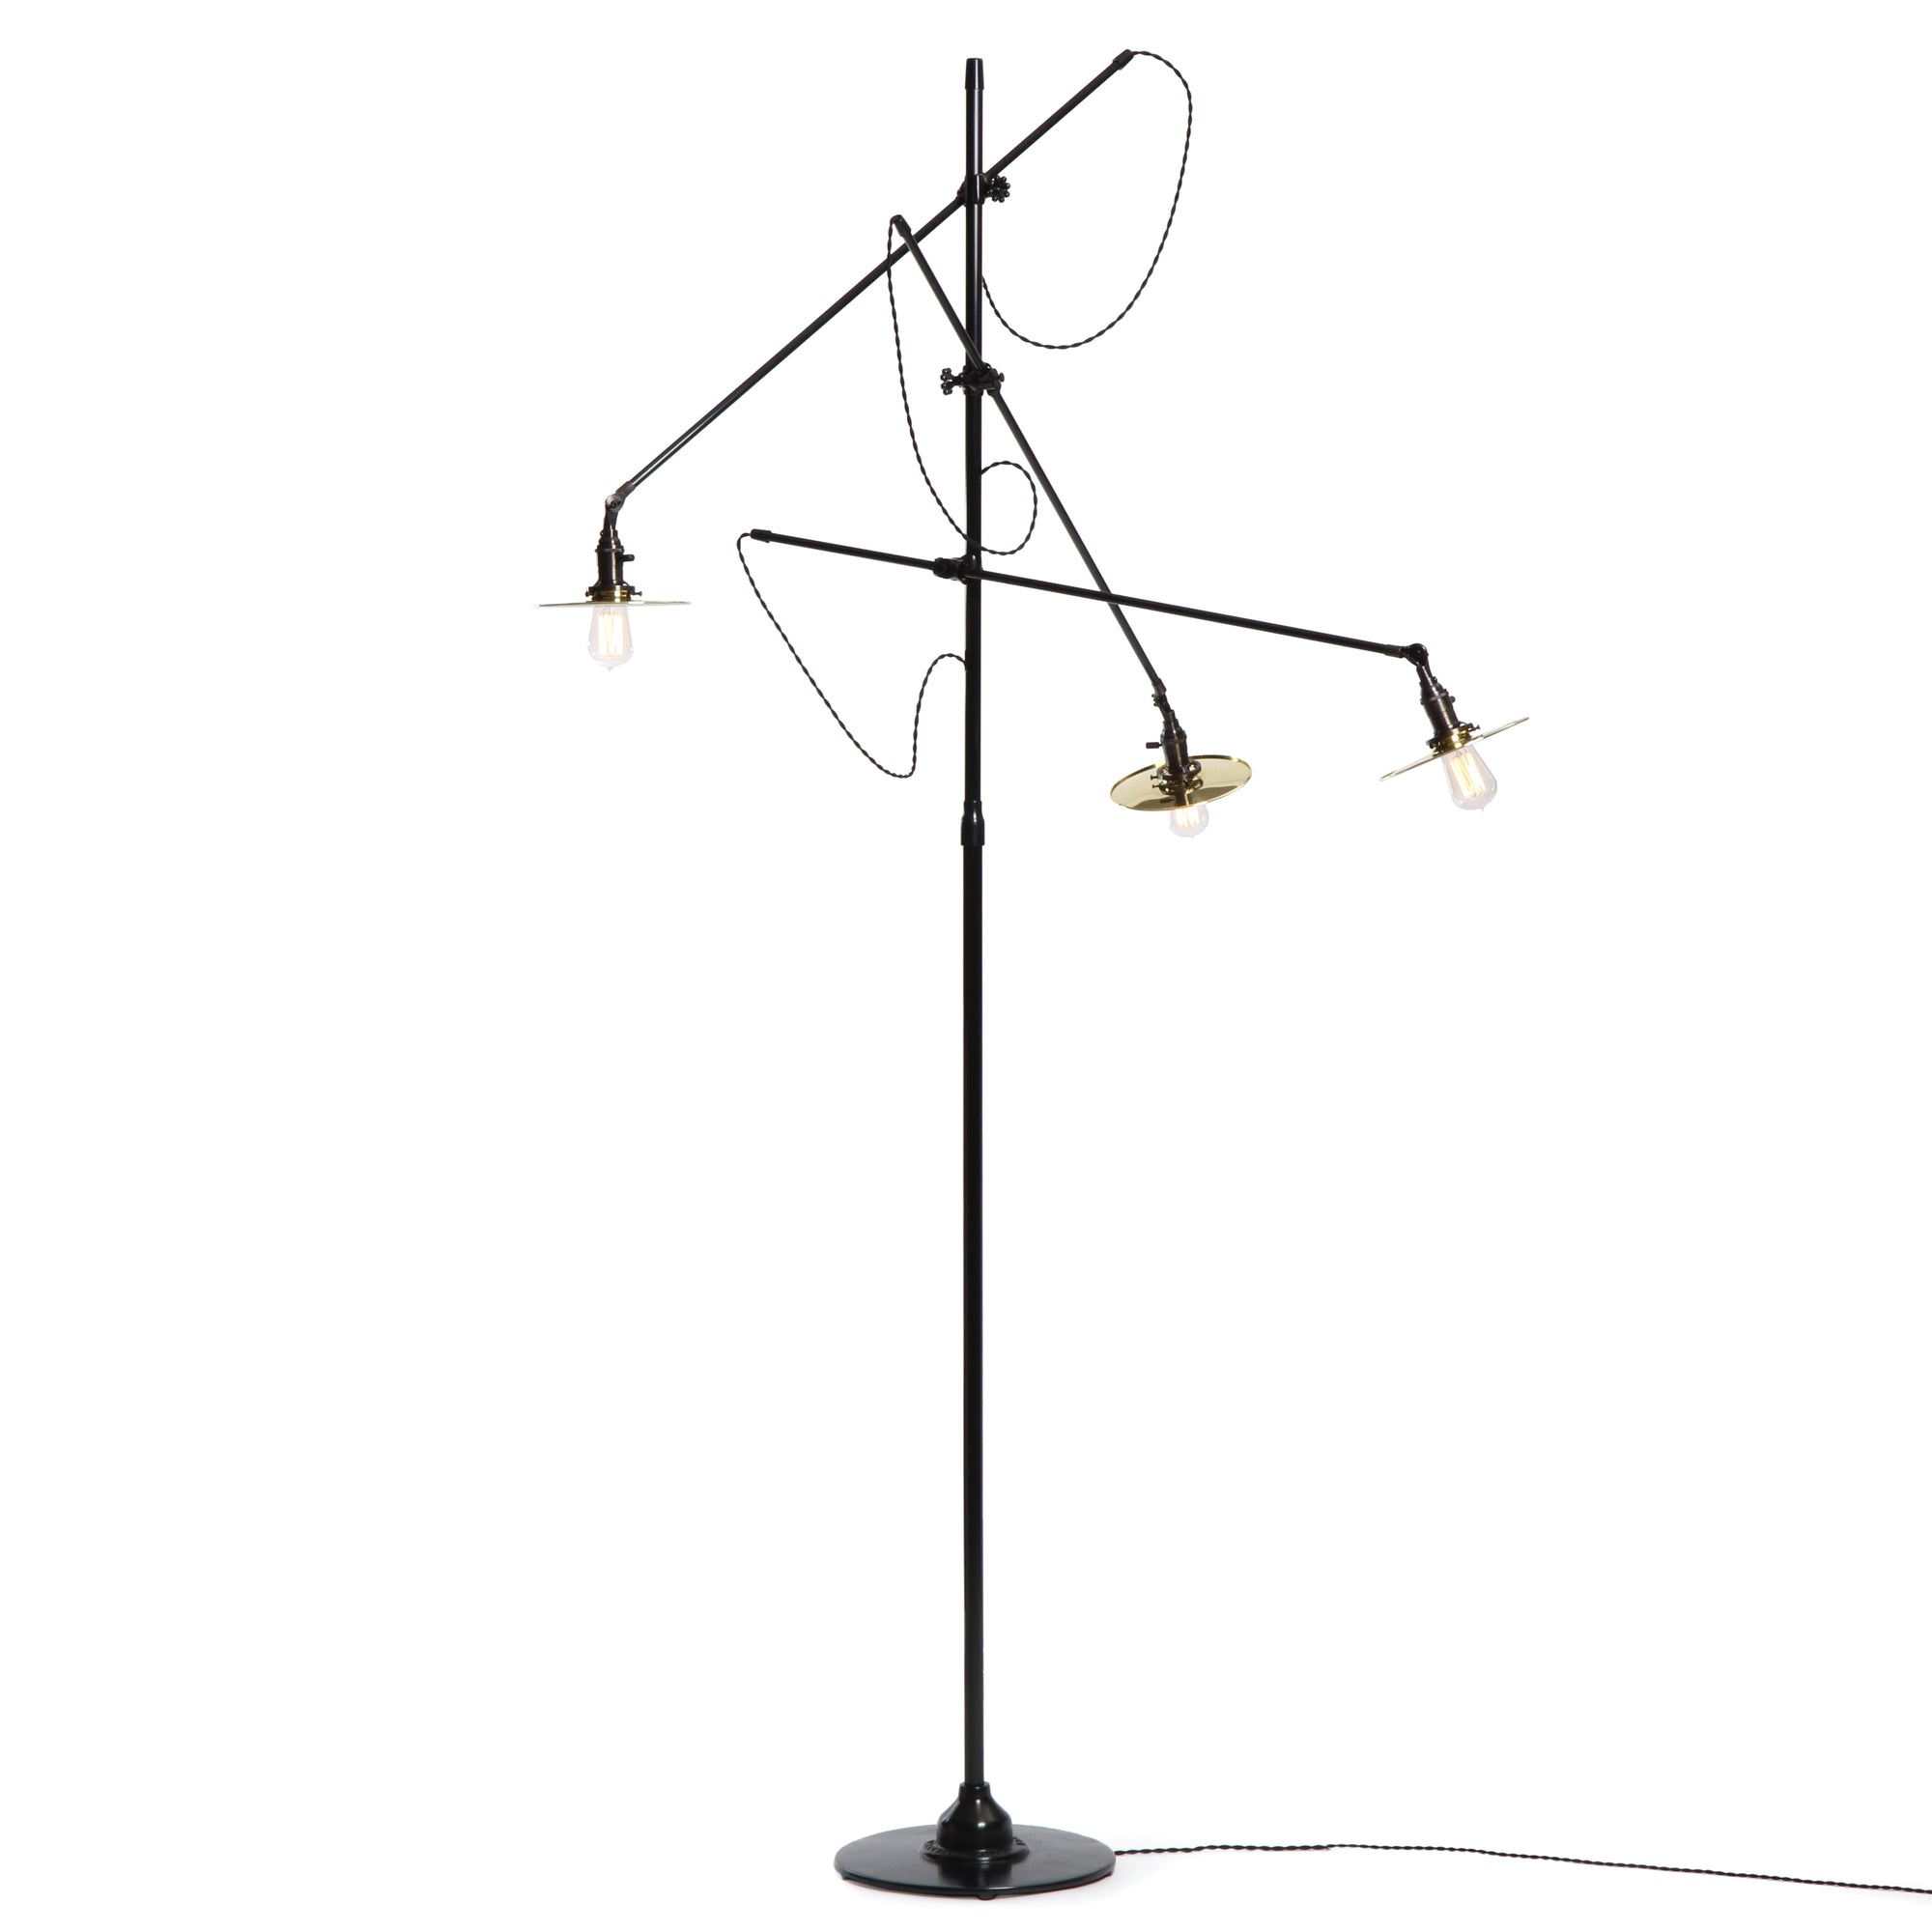 Adjustable 3 Arm Floor Lamp - Lighting - O.C. White WYETH